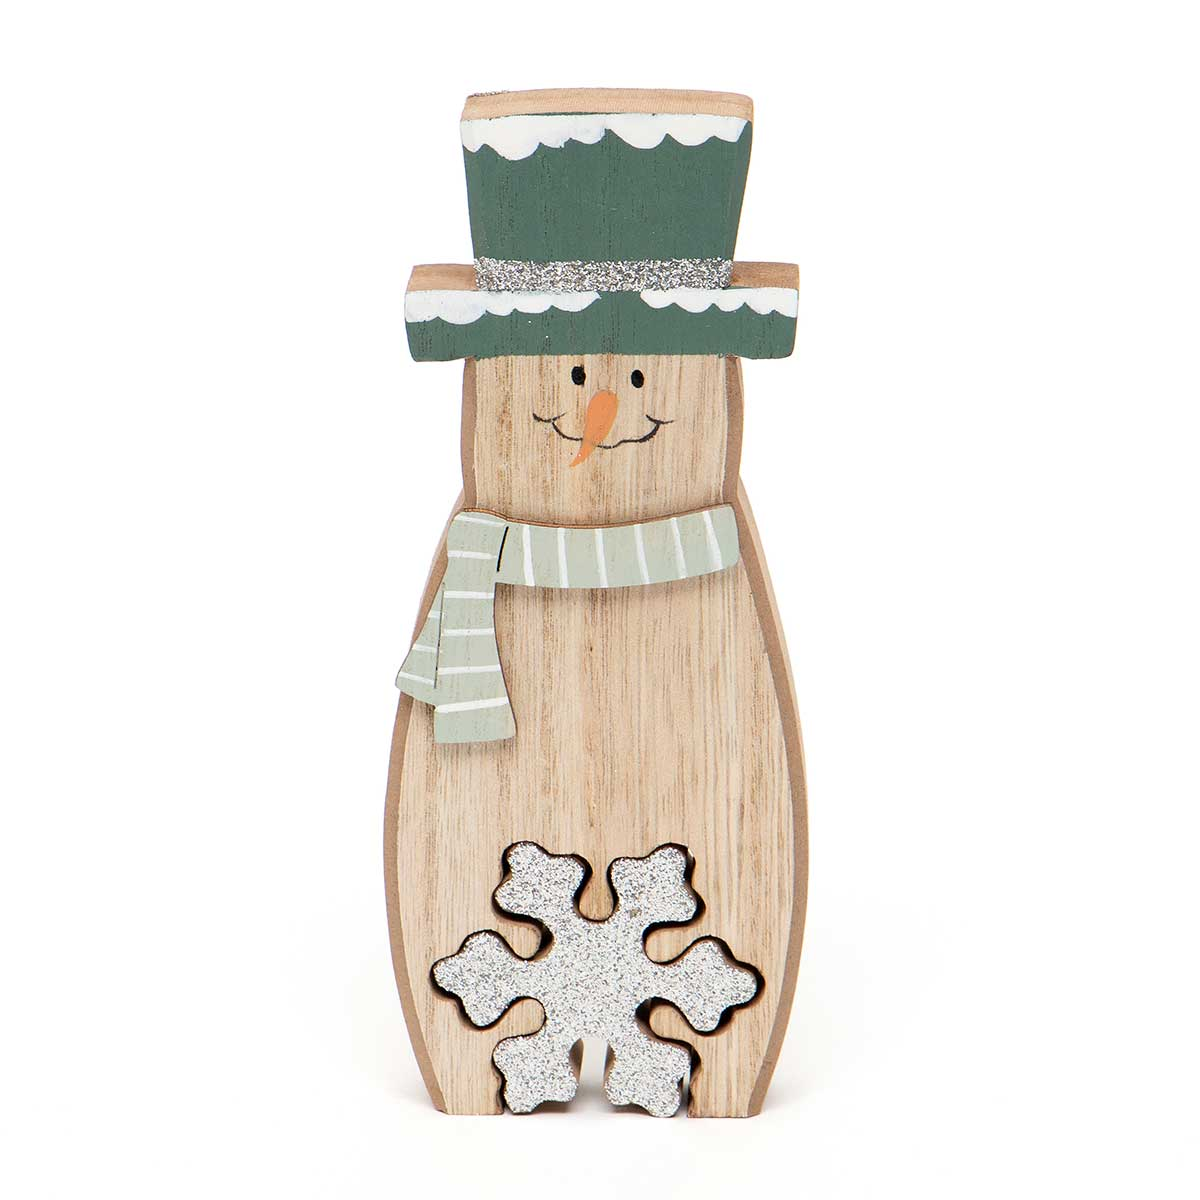 WOOD SNOWMAN WITH GLITTER SNOWFLAKE SHELF SITTER